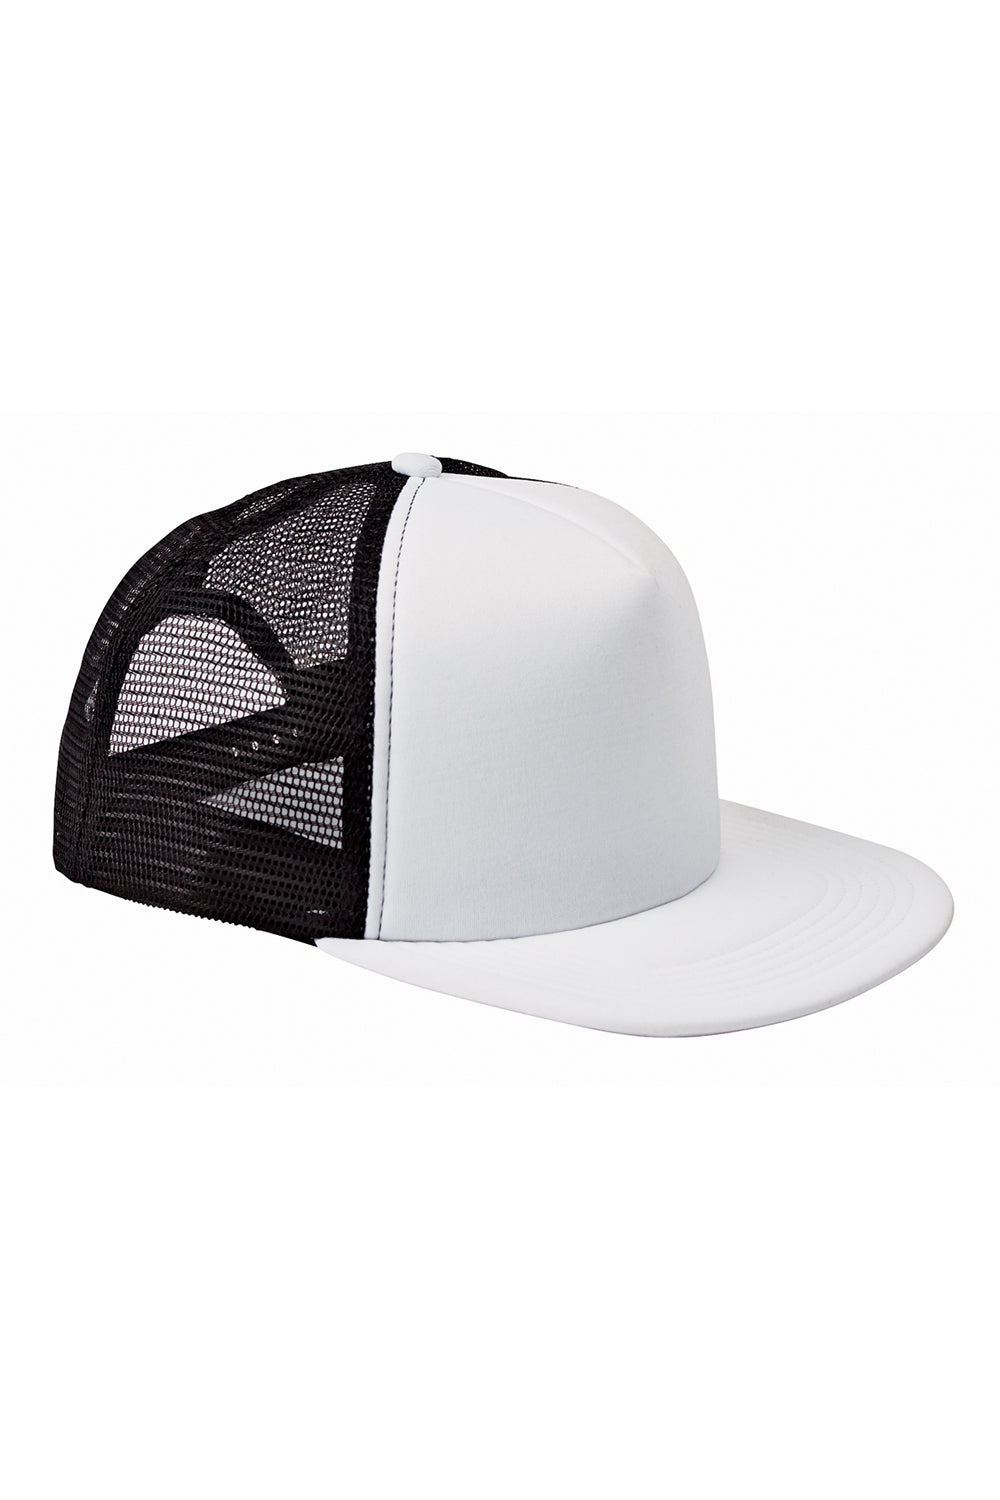 Big Accessories BX030 Mens Adjustable Trucker Hat White Front